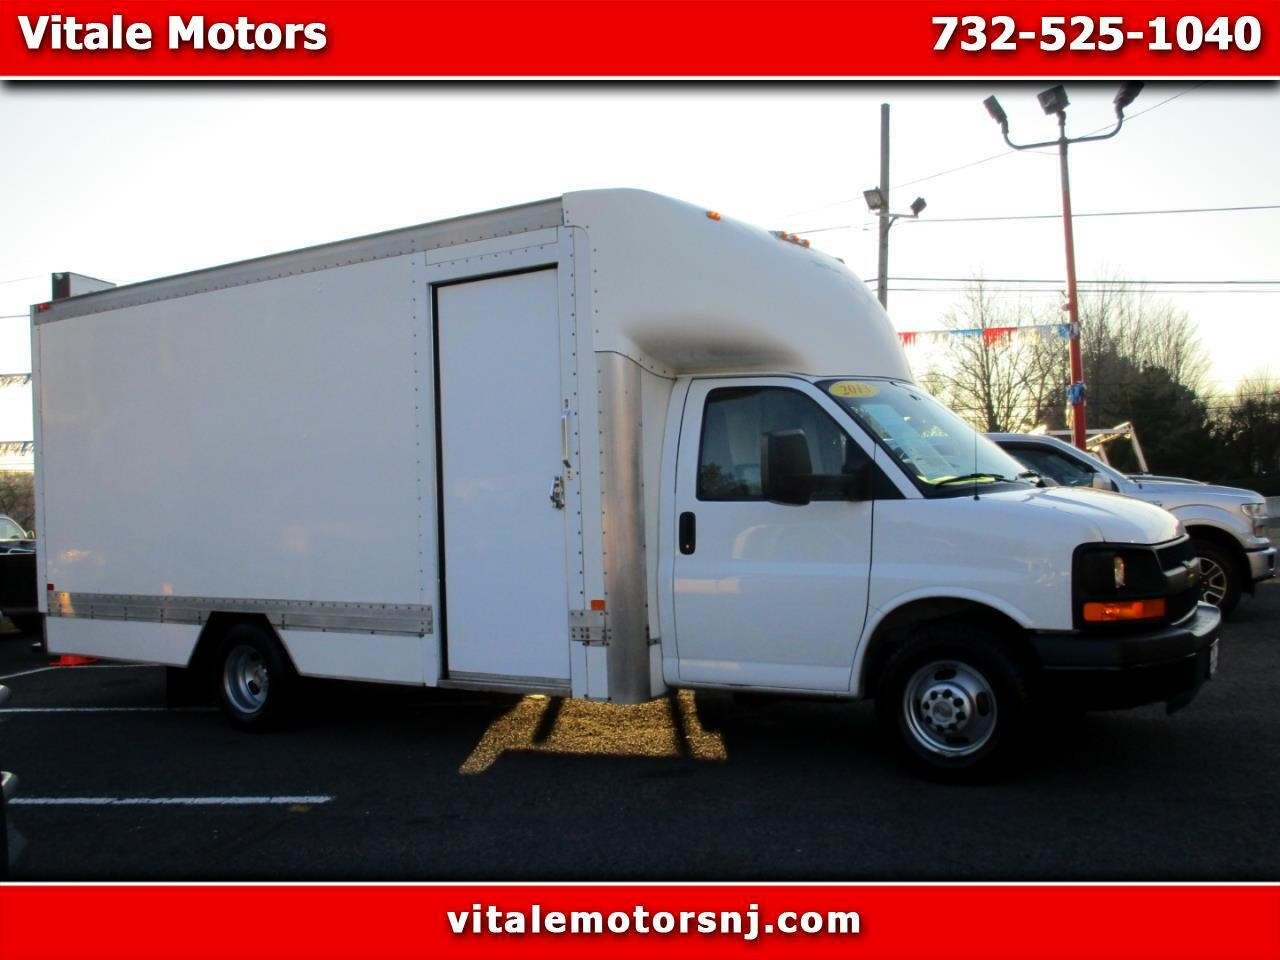 2013 Chevrolet Express G 3500 BOX TRUCK 17 FOOT W/ SIDE DOOR